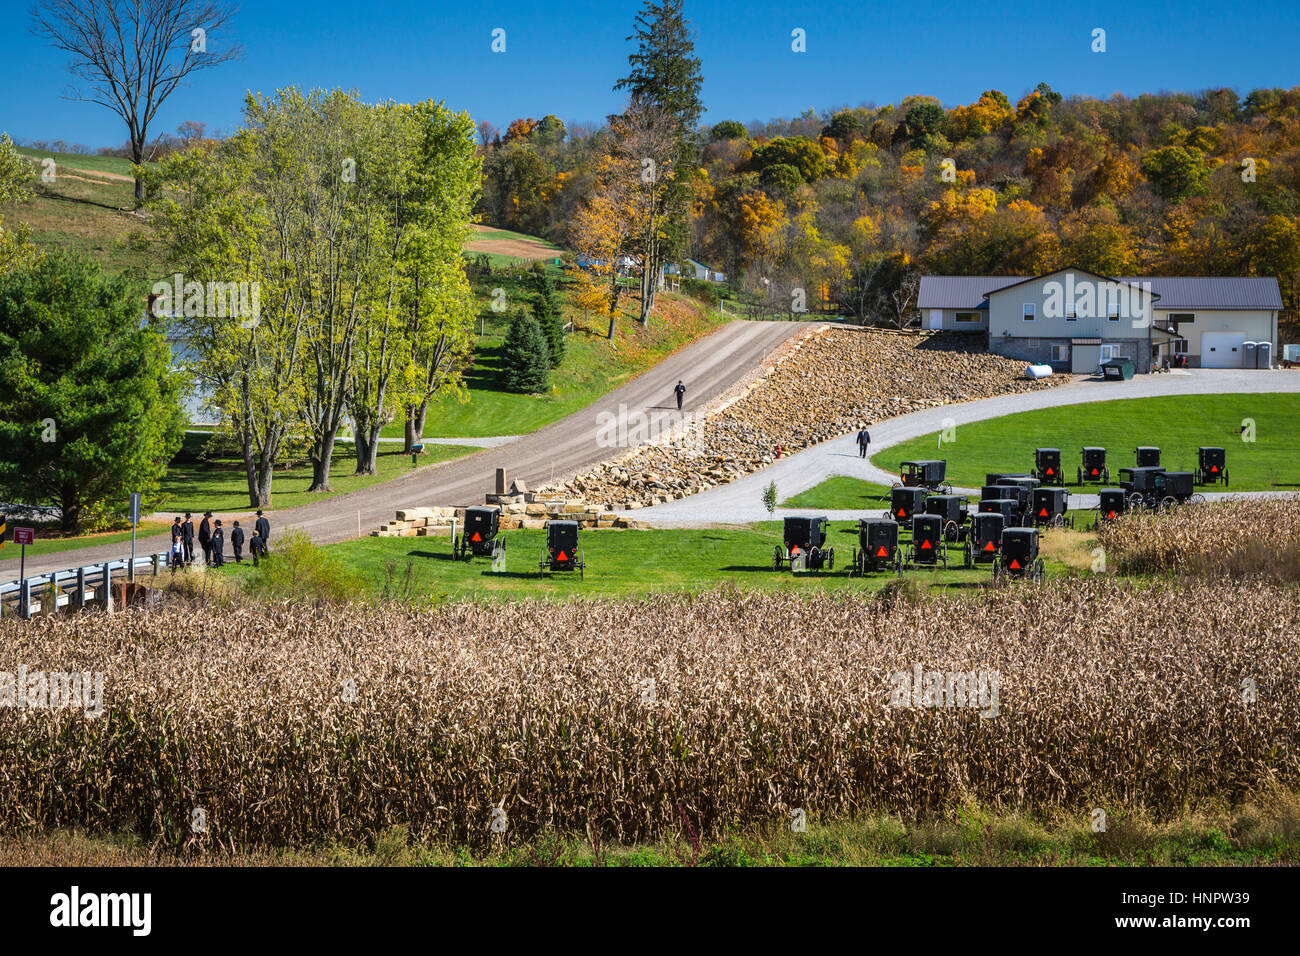 Amish Culture Stock Photos Amp Amish Culture Stock Images